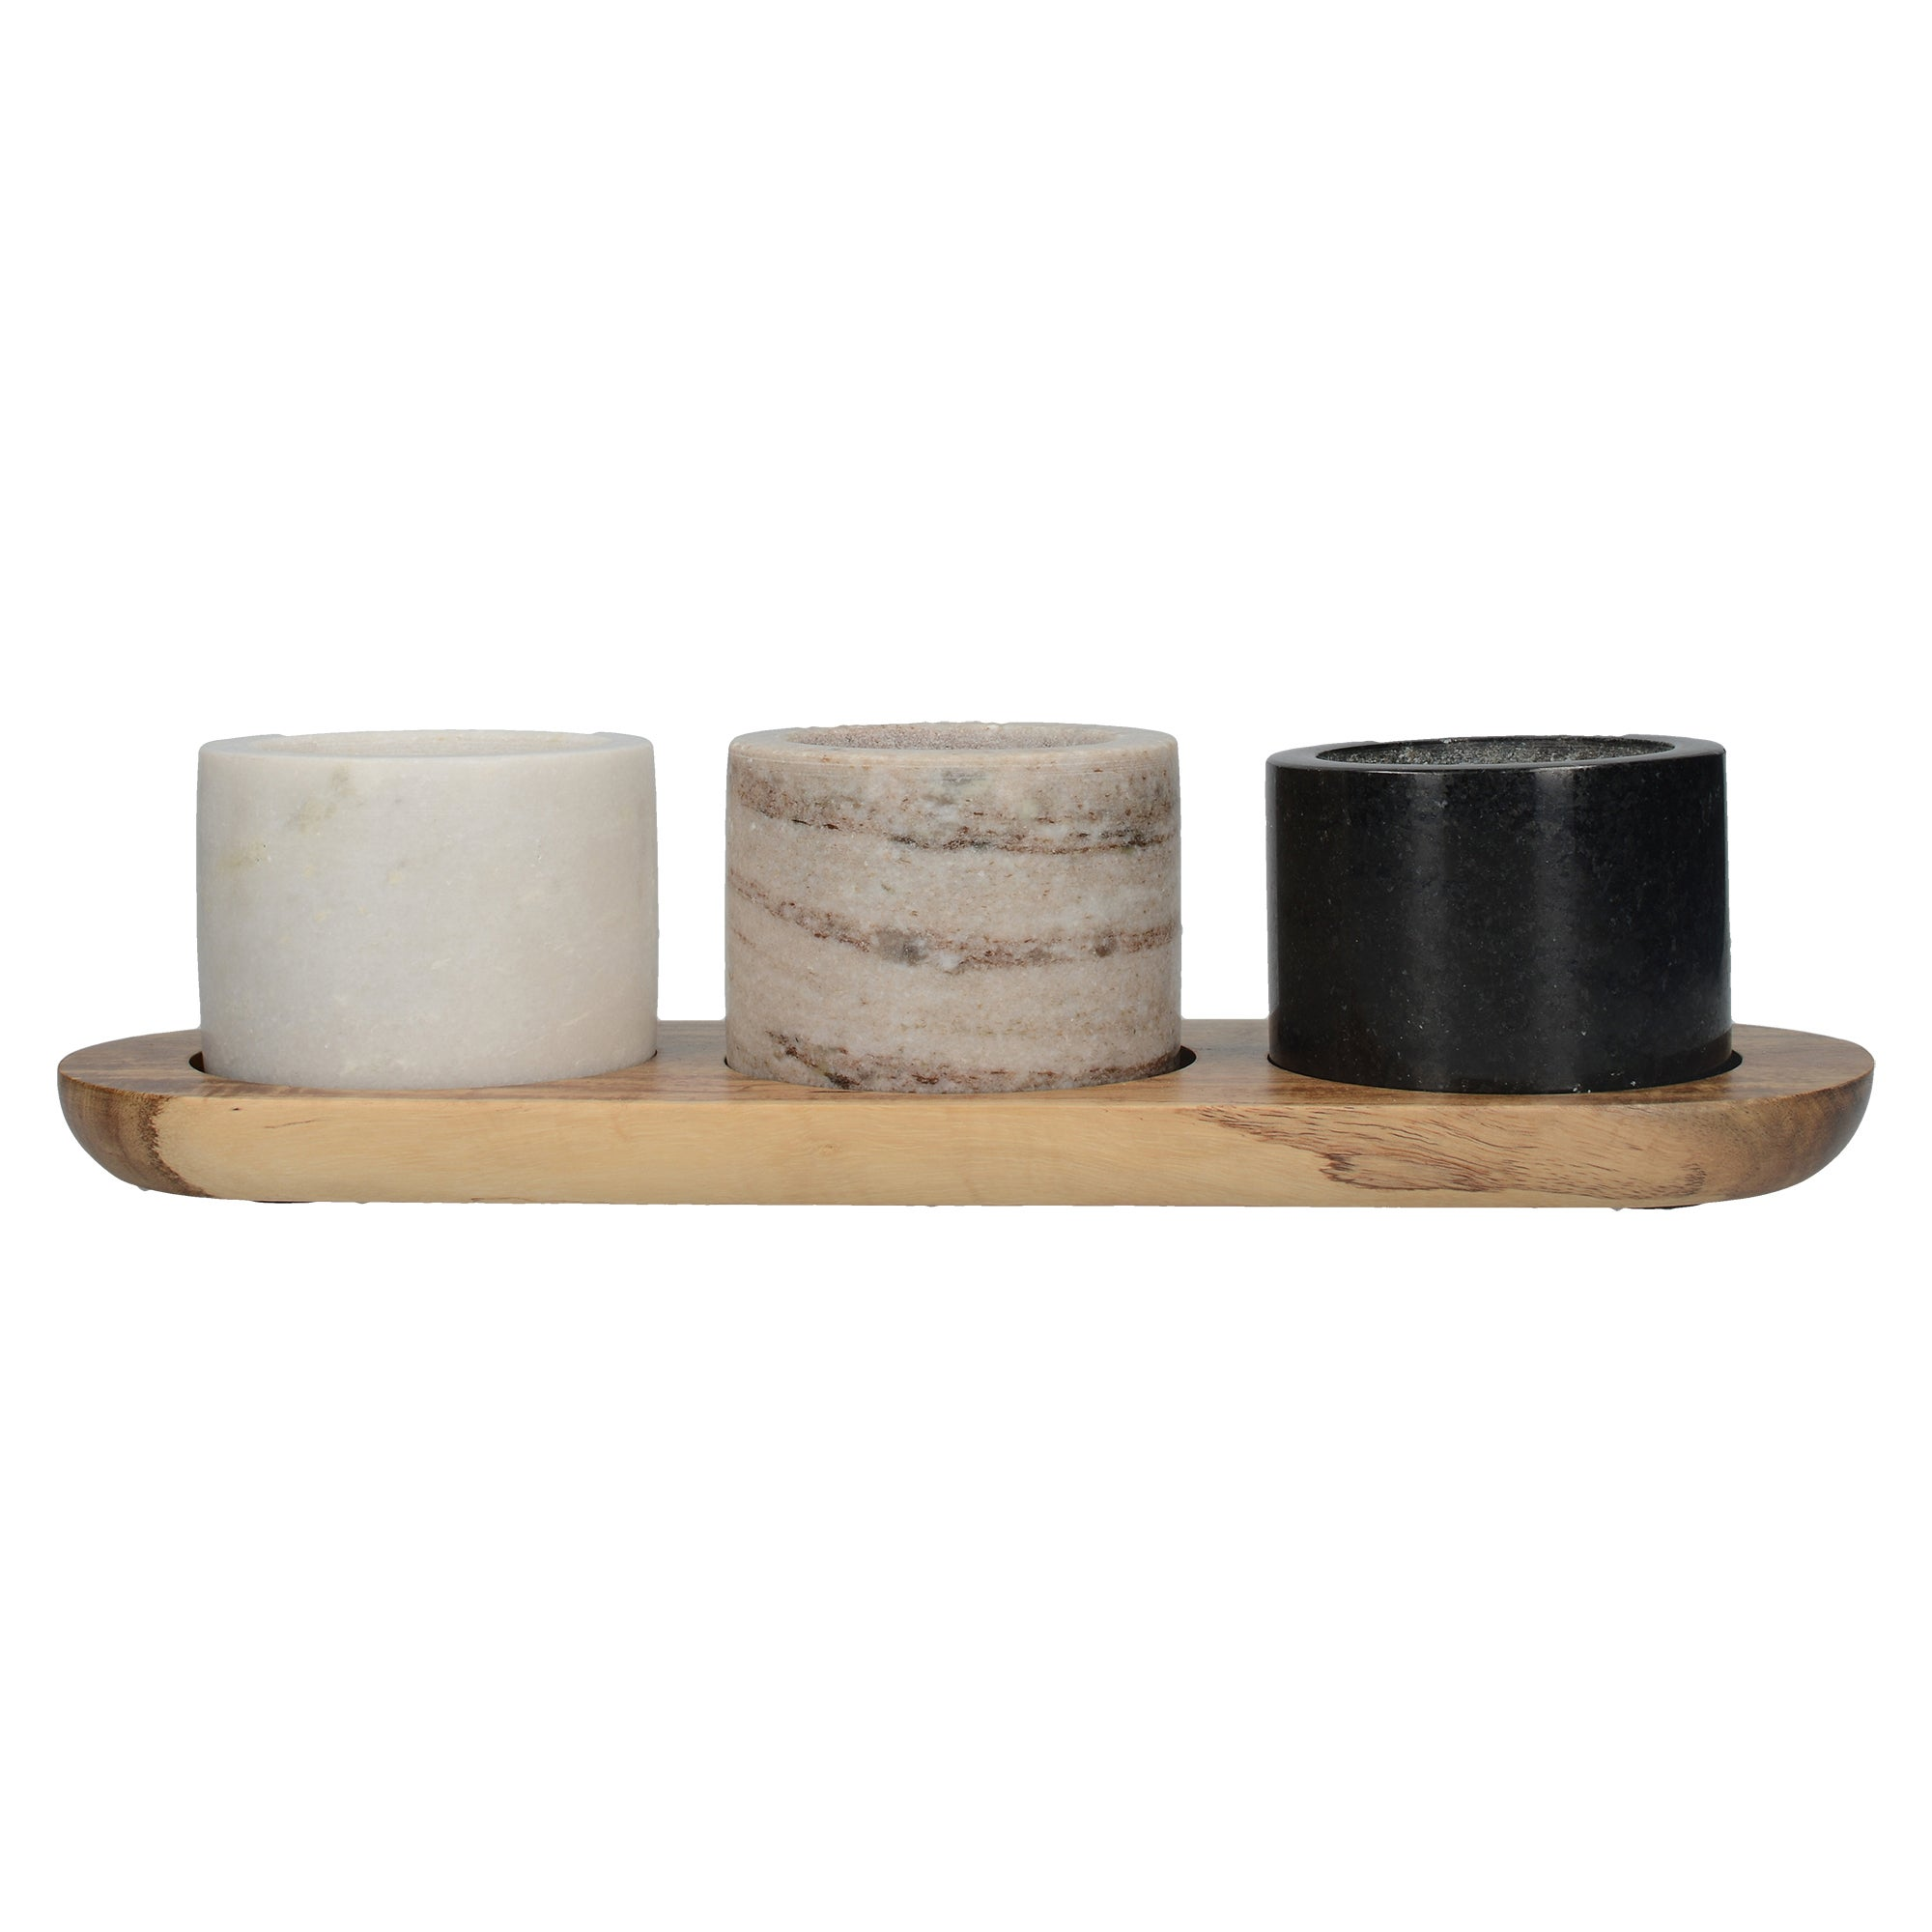 3 Piece Marble Dishes & Board Set Natural